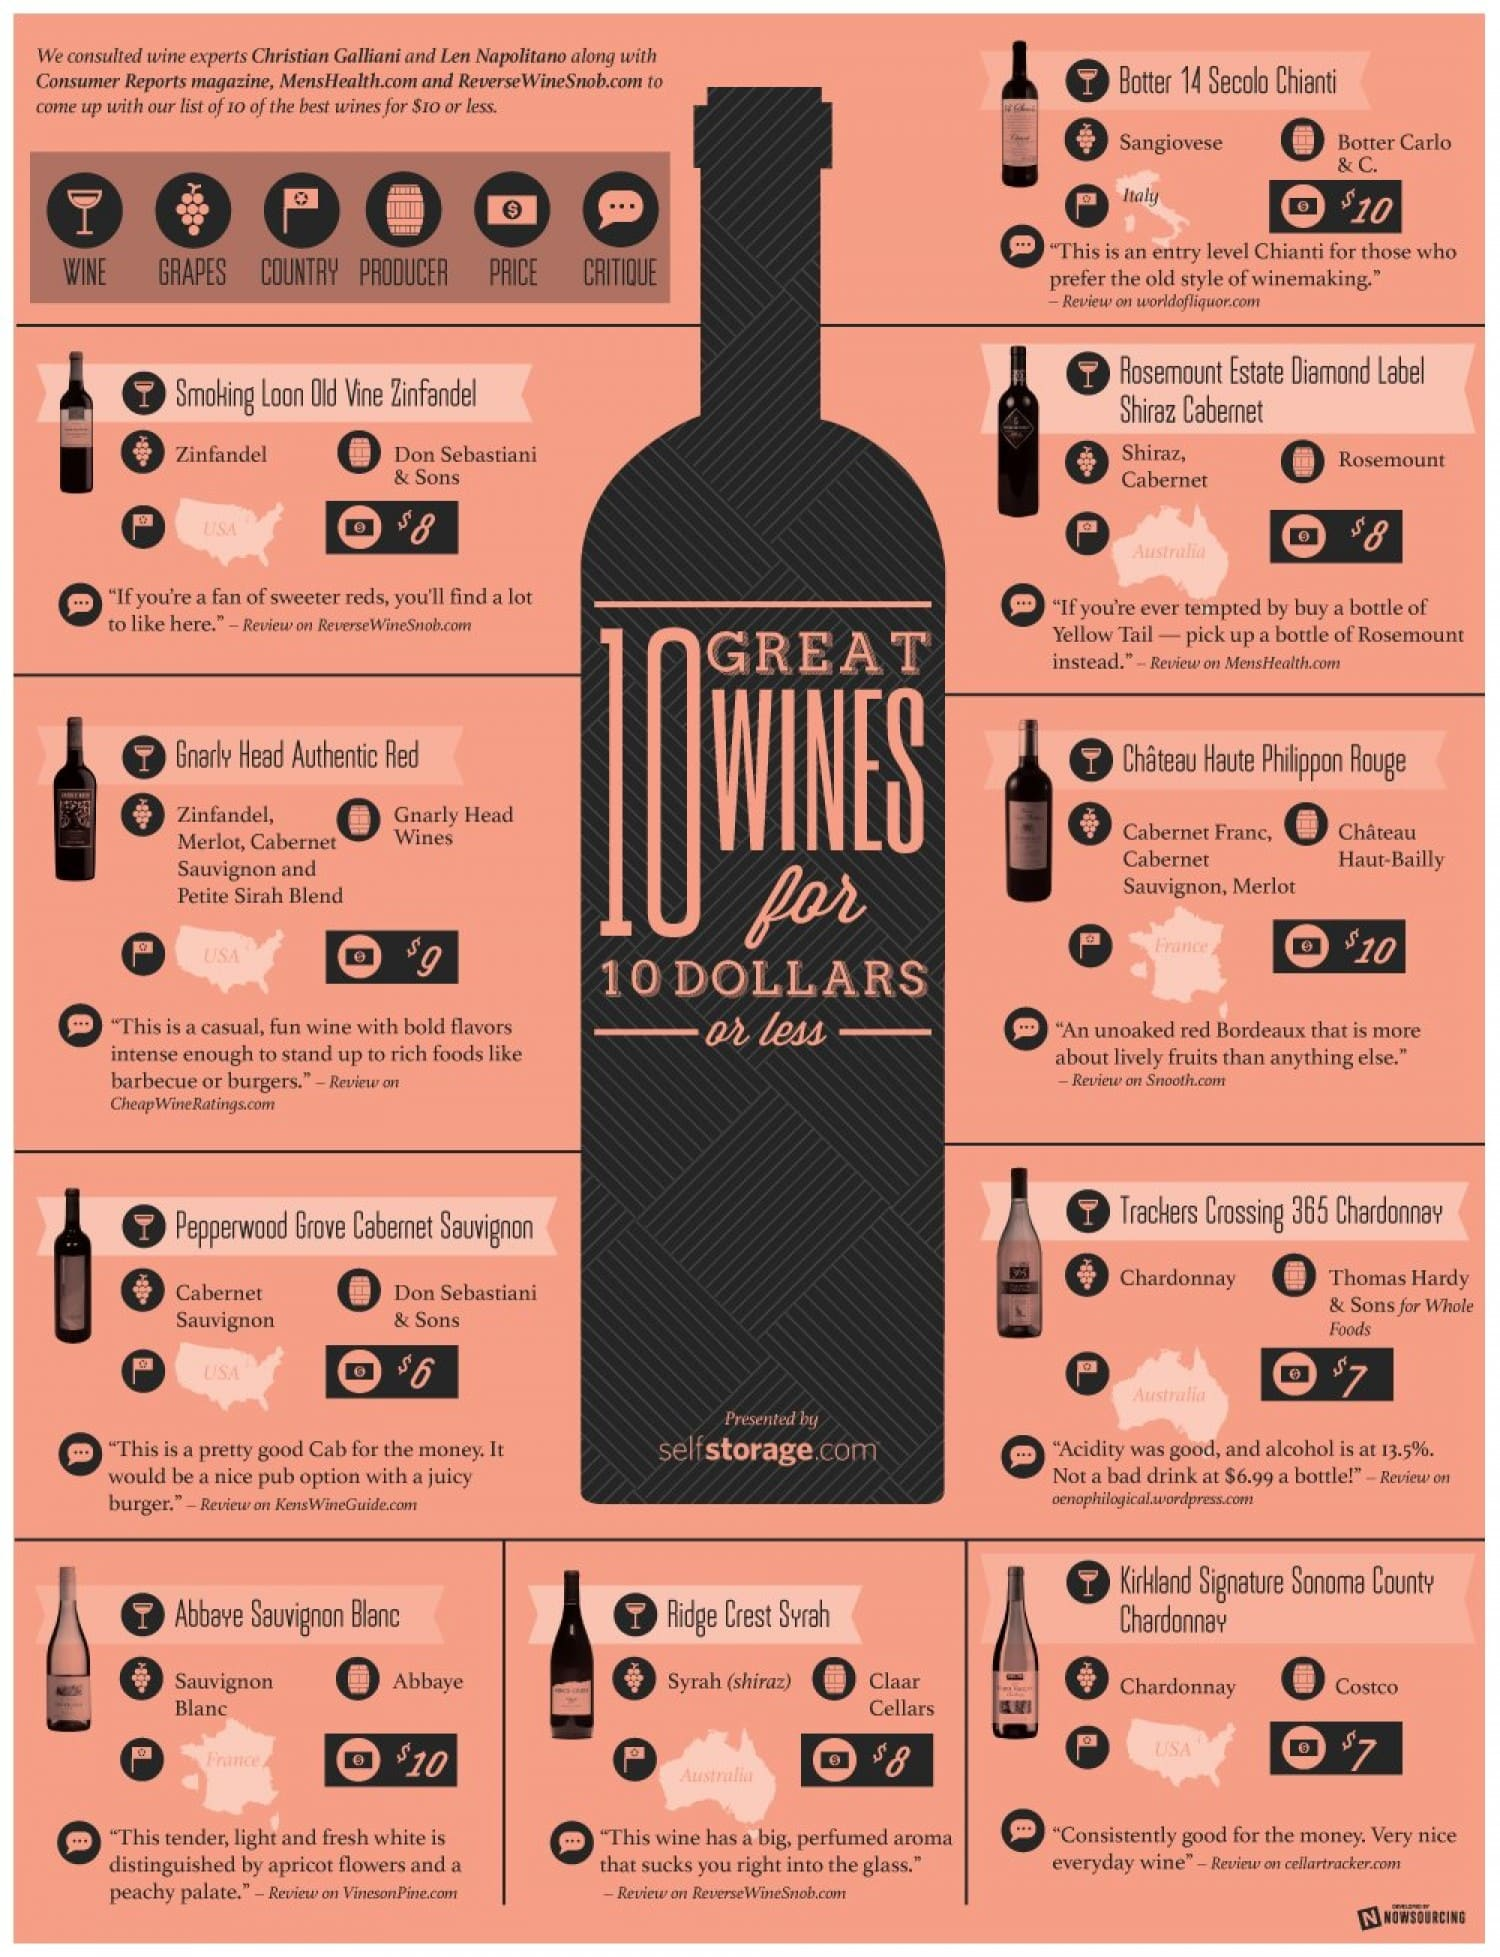 great tasting wines for 10 or less